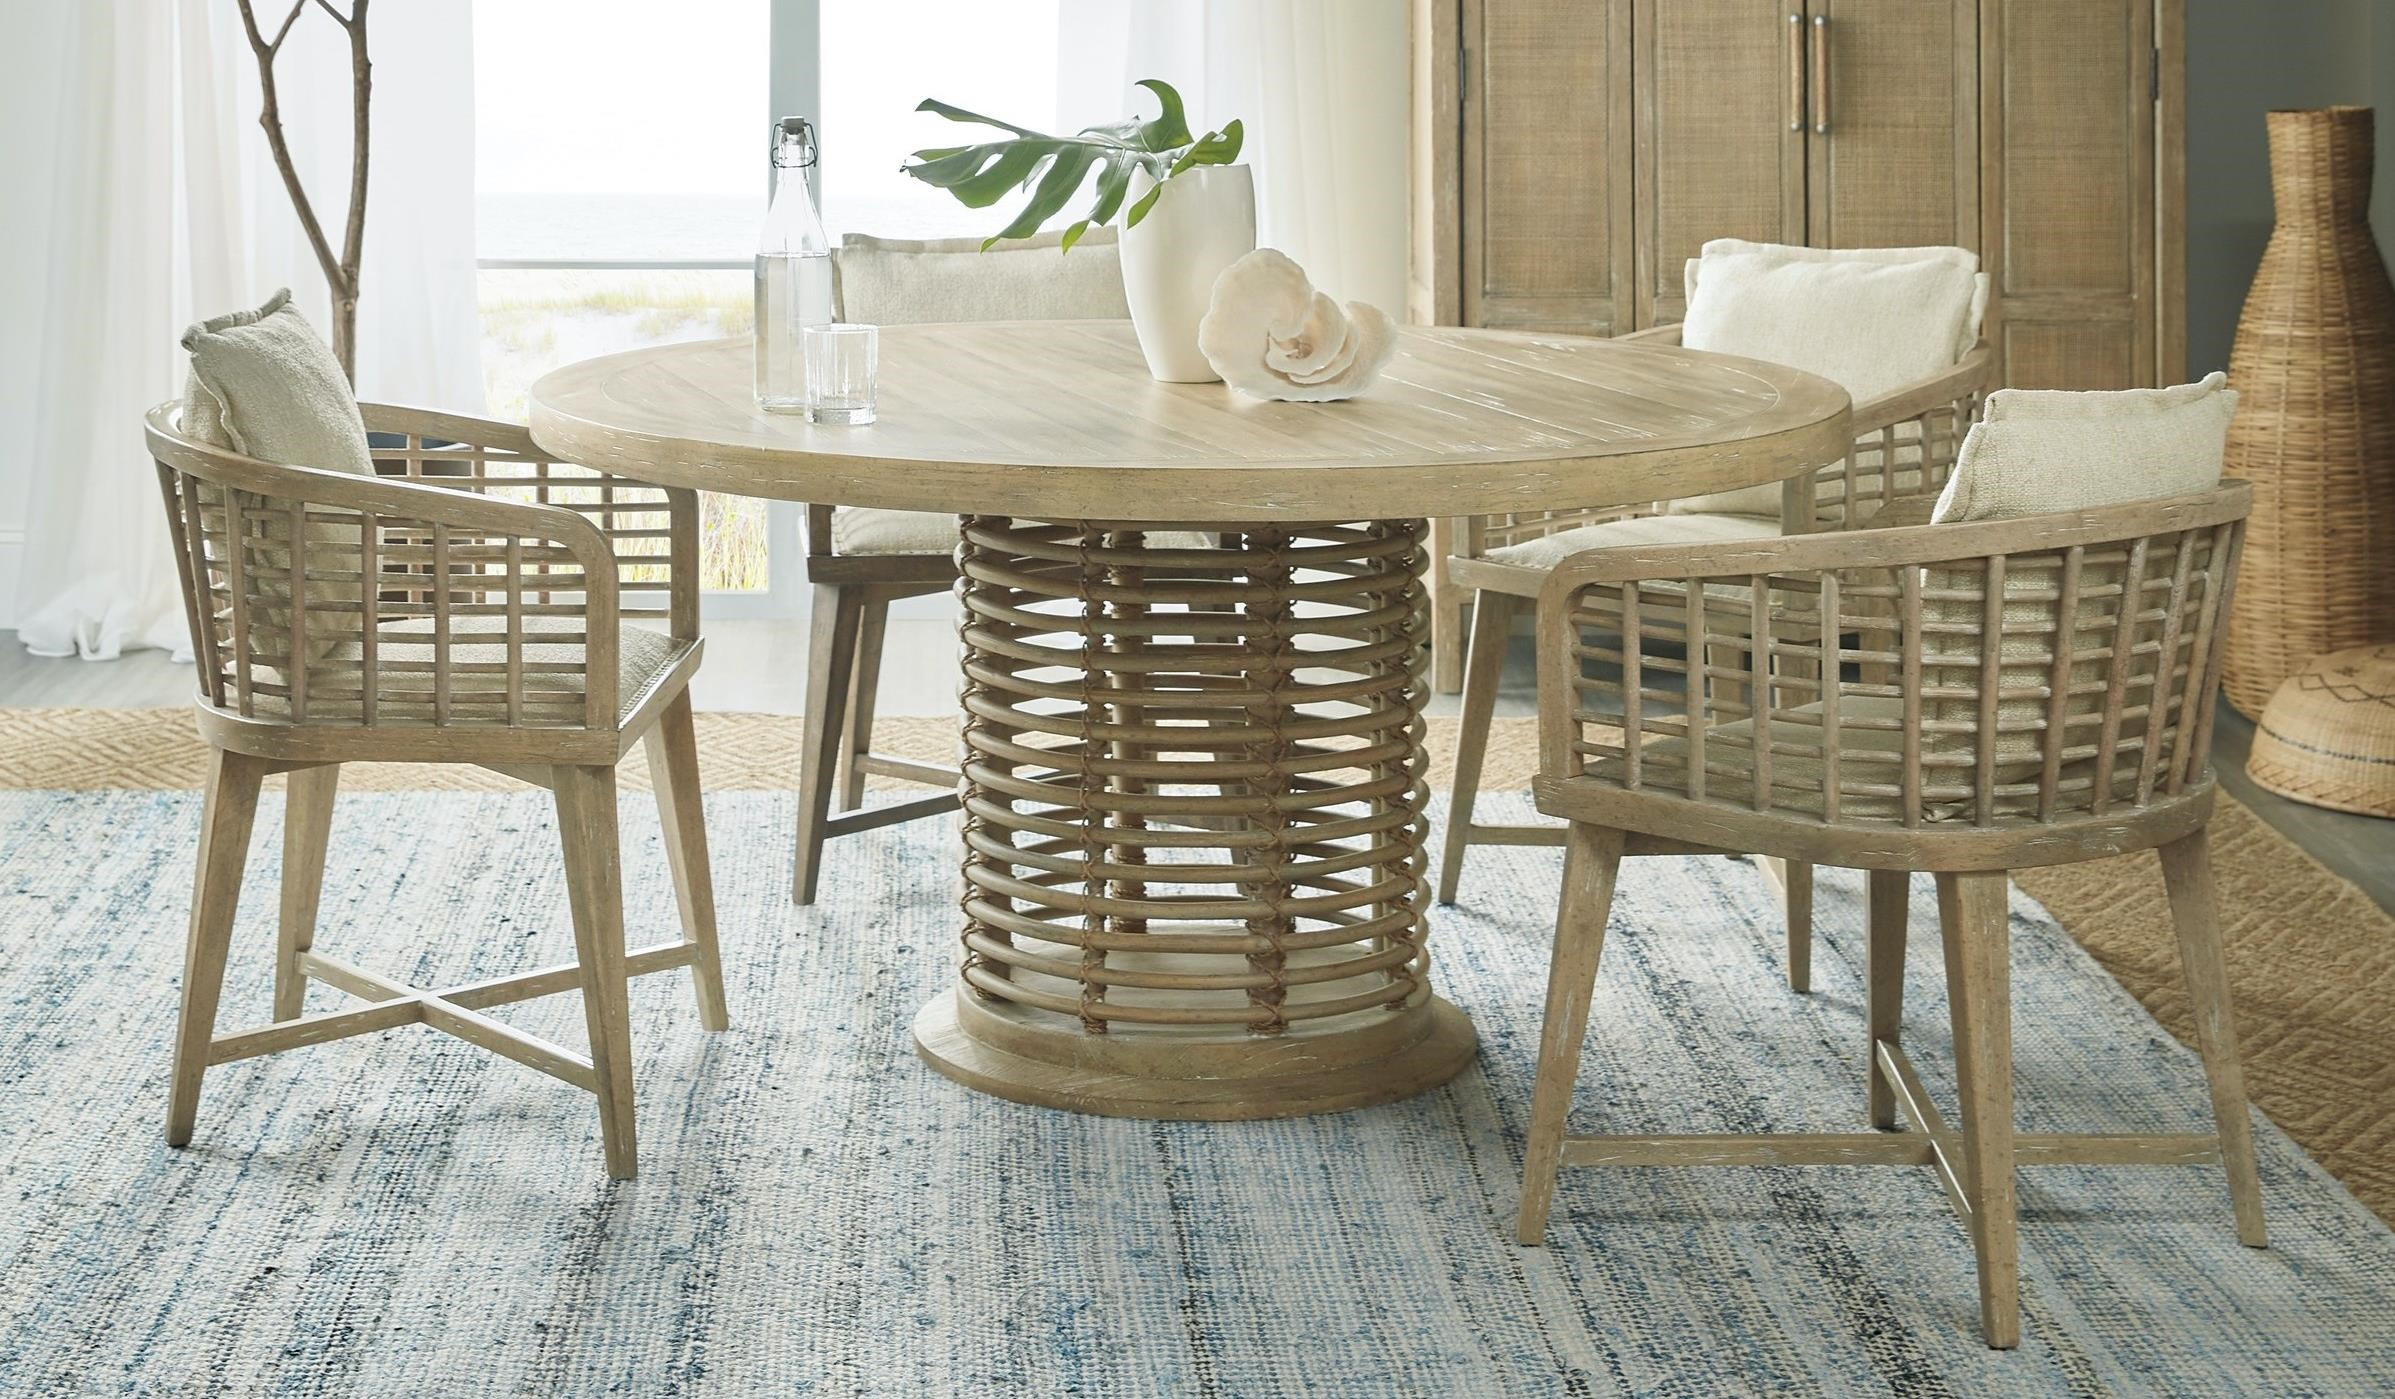 Surfrider 5-Piece Table and Chair Set by Hooker Furniture at Baer's Furniture